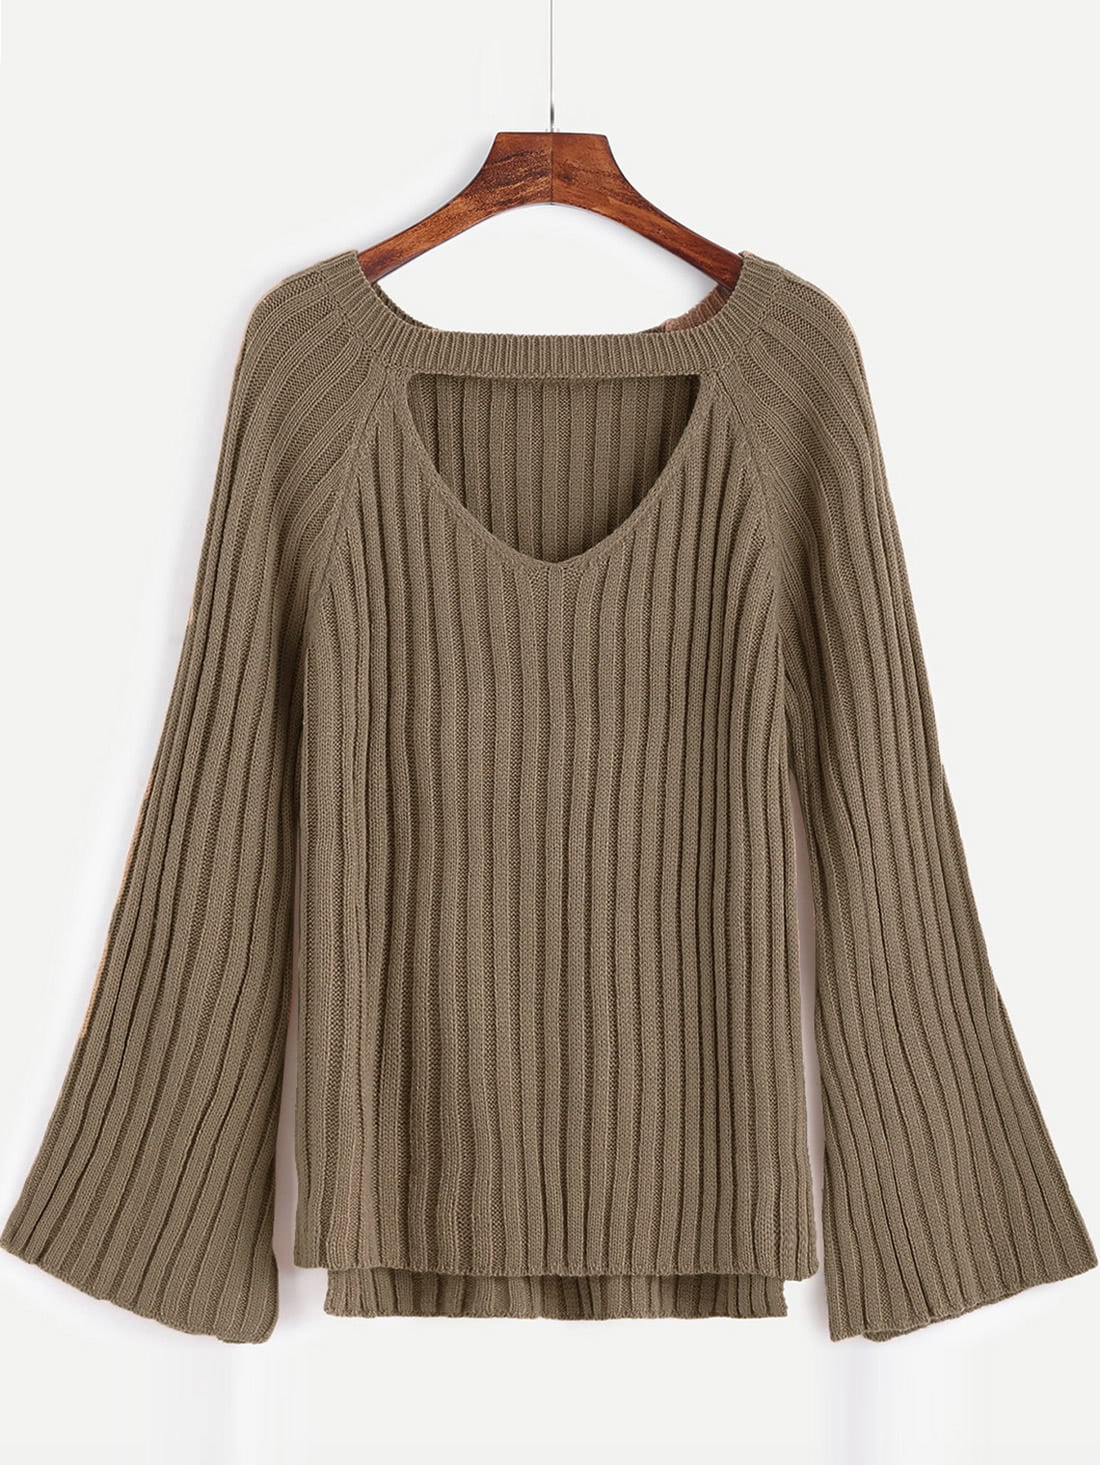 Khaki Cutout Front High Low SweaterKhaki Cutout Front High Low Sweater<br><br>color: Khaki<br>size: one-size